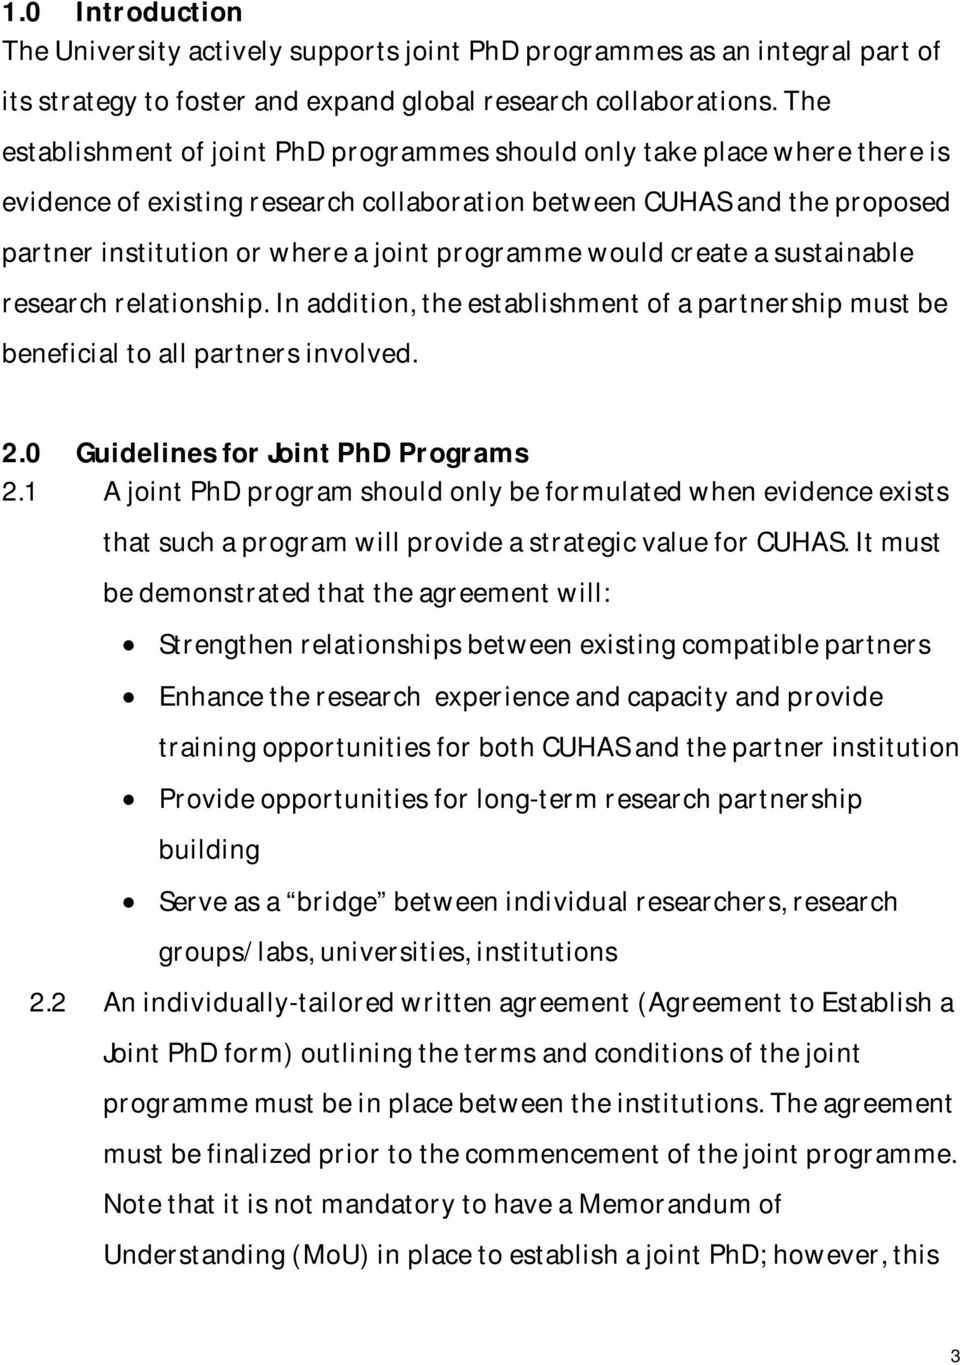 programme would create a sustainable research relationship. In addition, the establishment of a partnership must be beneficial to all partners involved. 2.0 Guidelines for Joint PhD Programs 2.